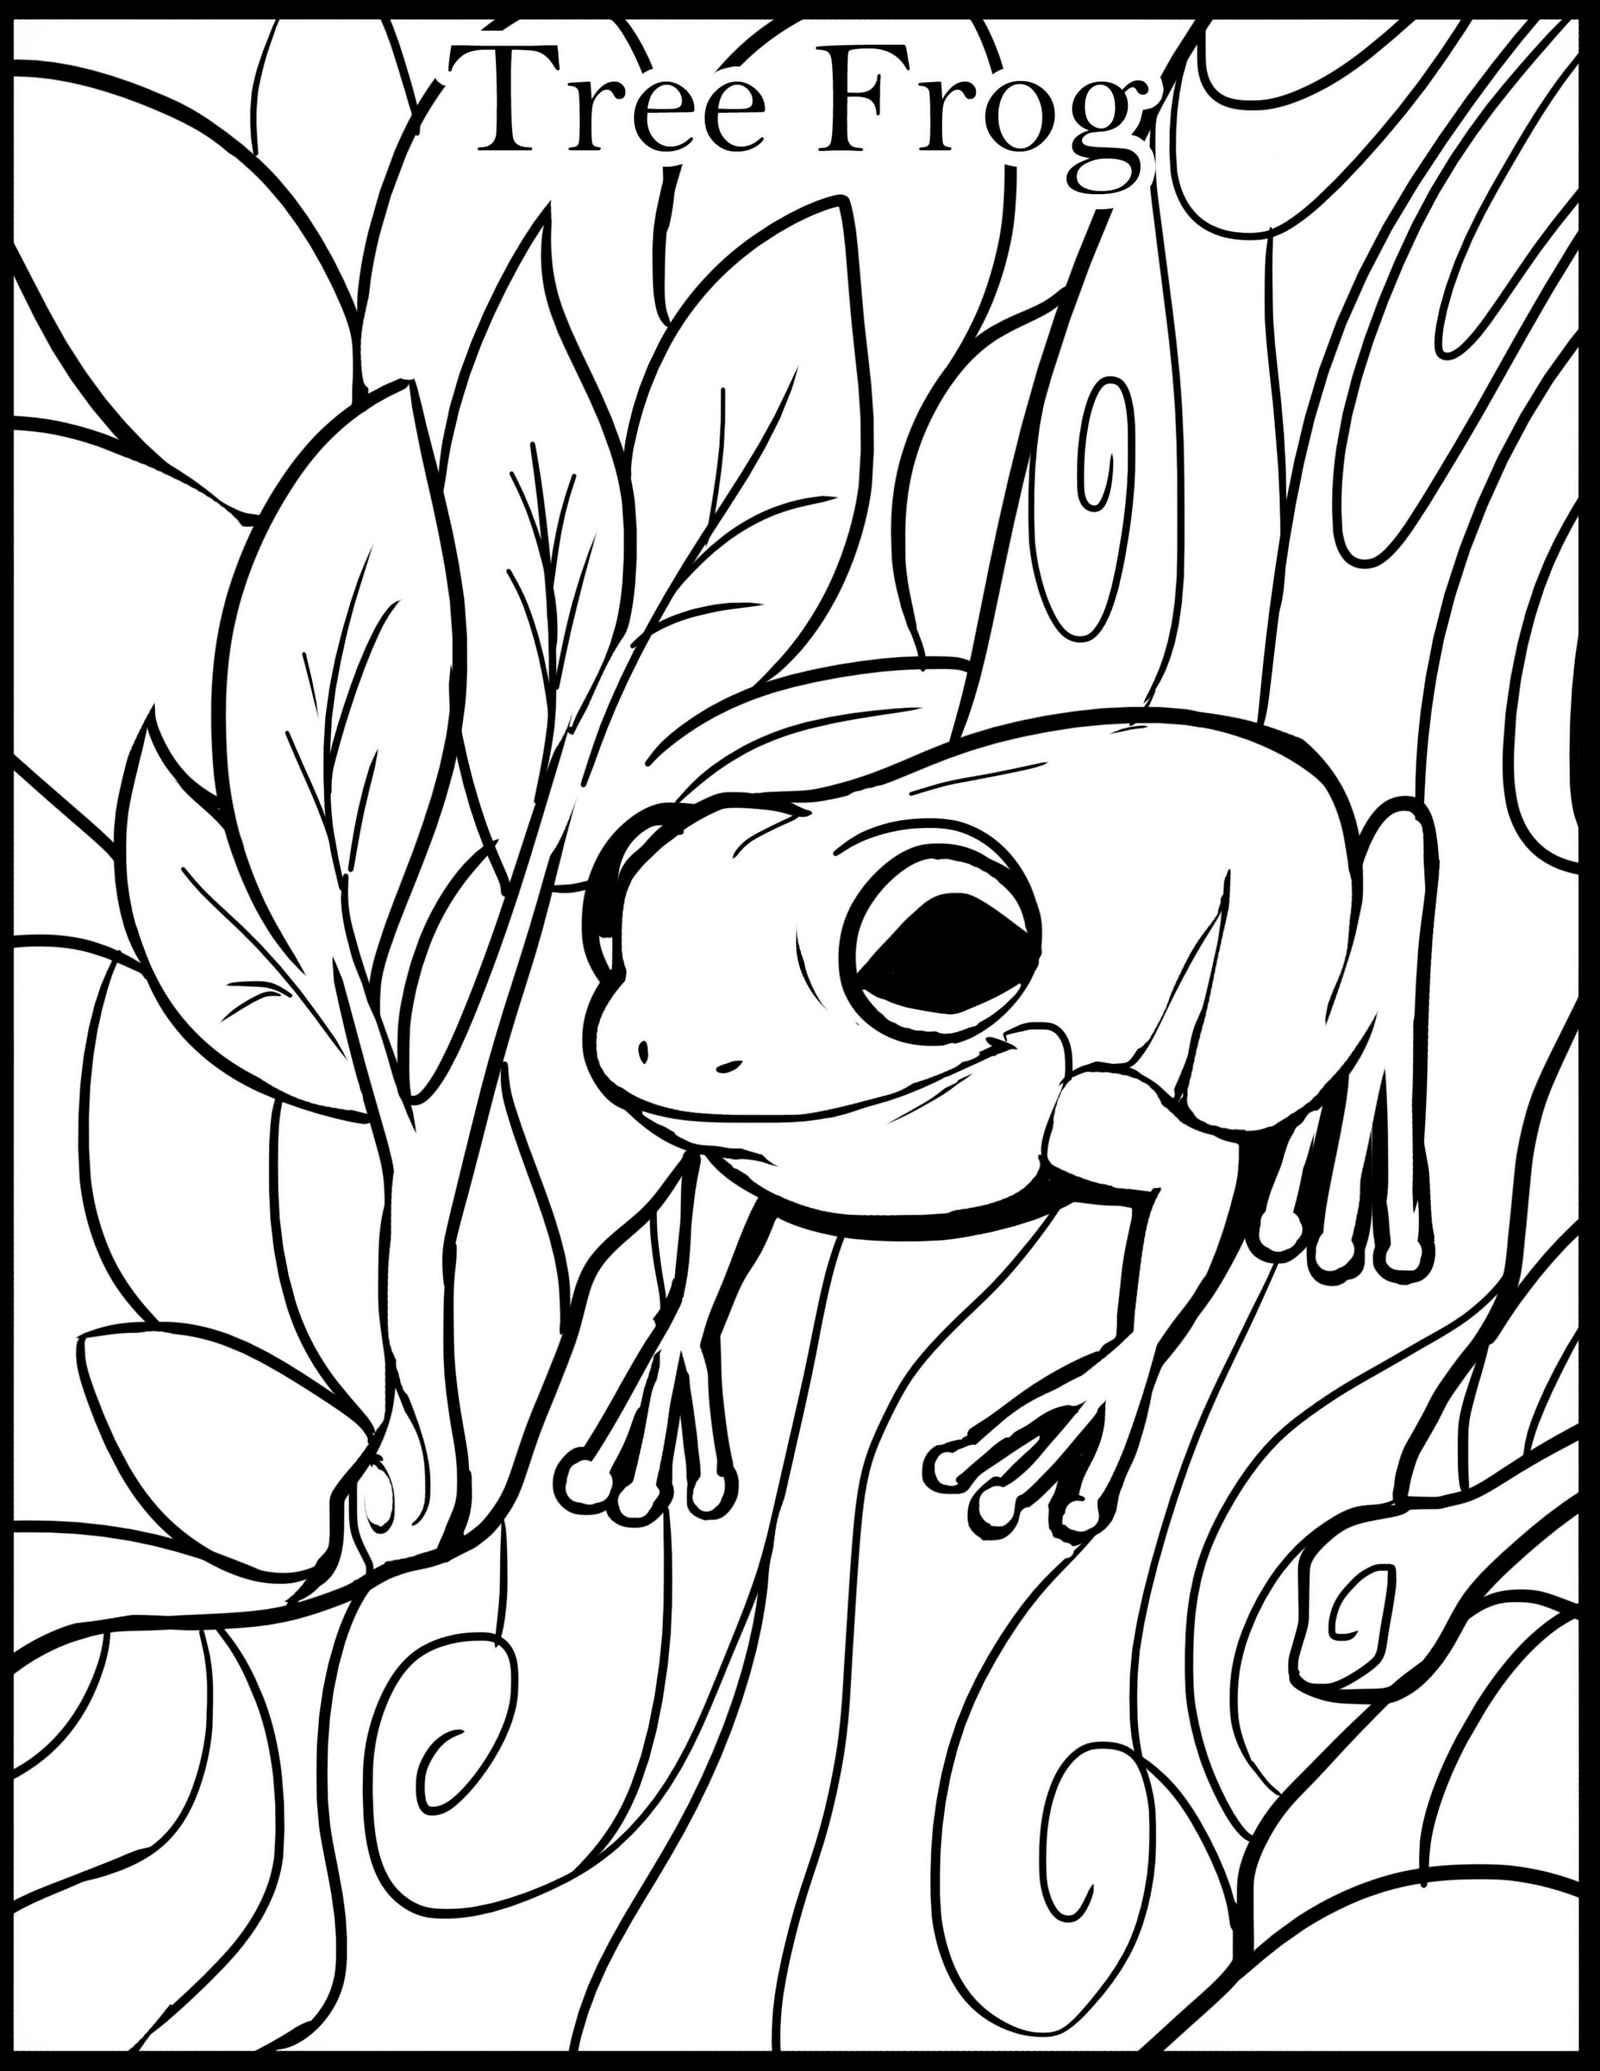 tree frog coloring page to print